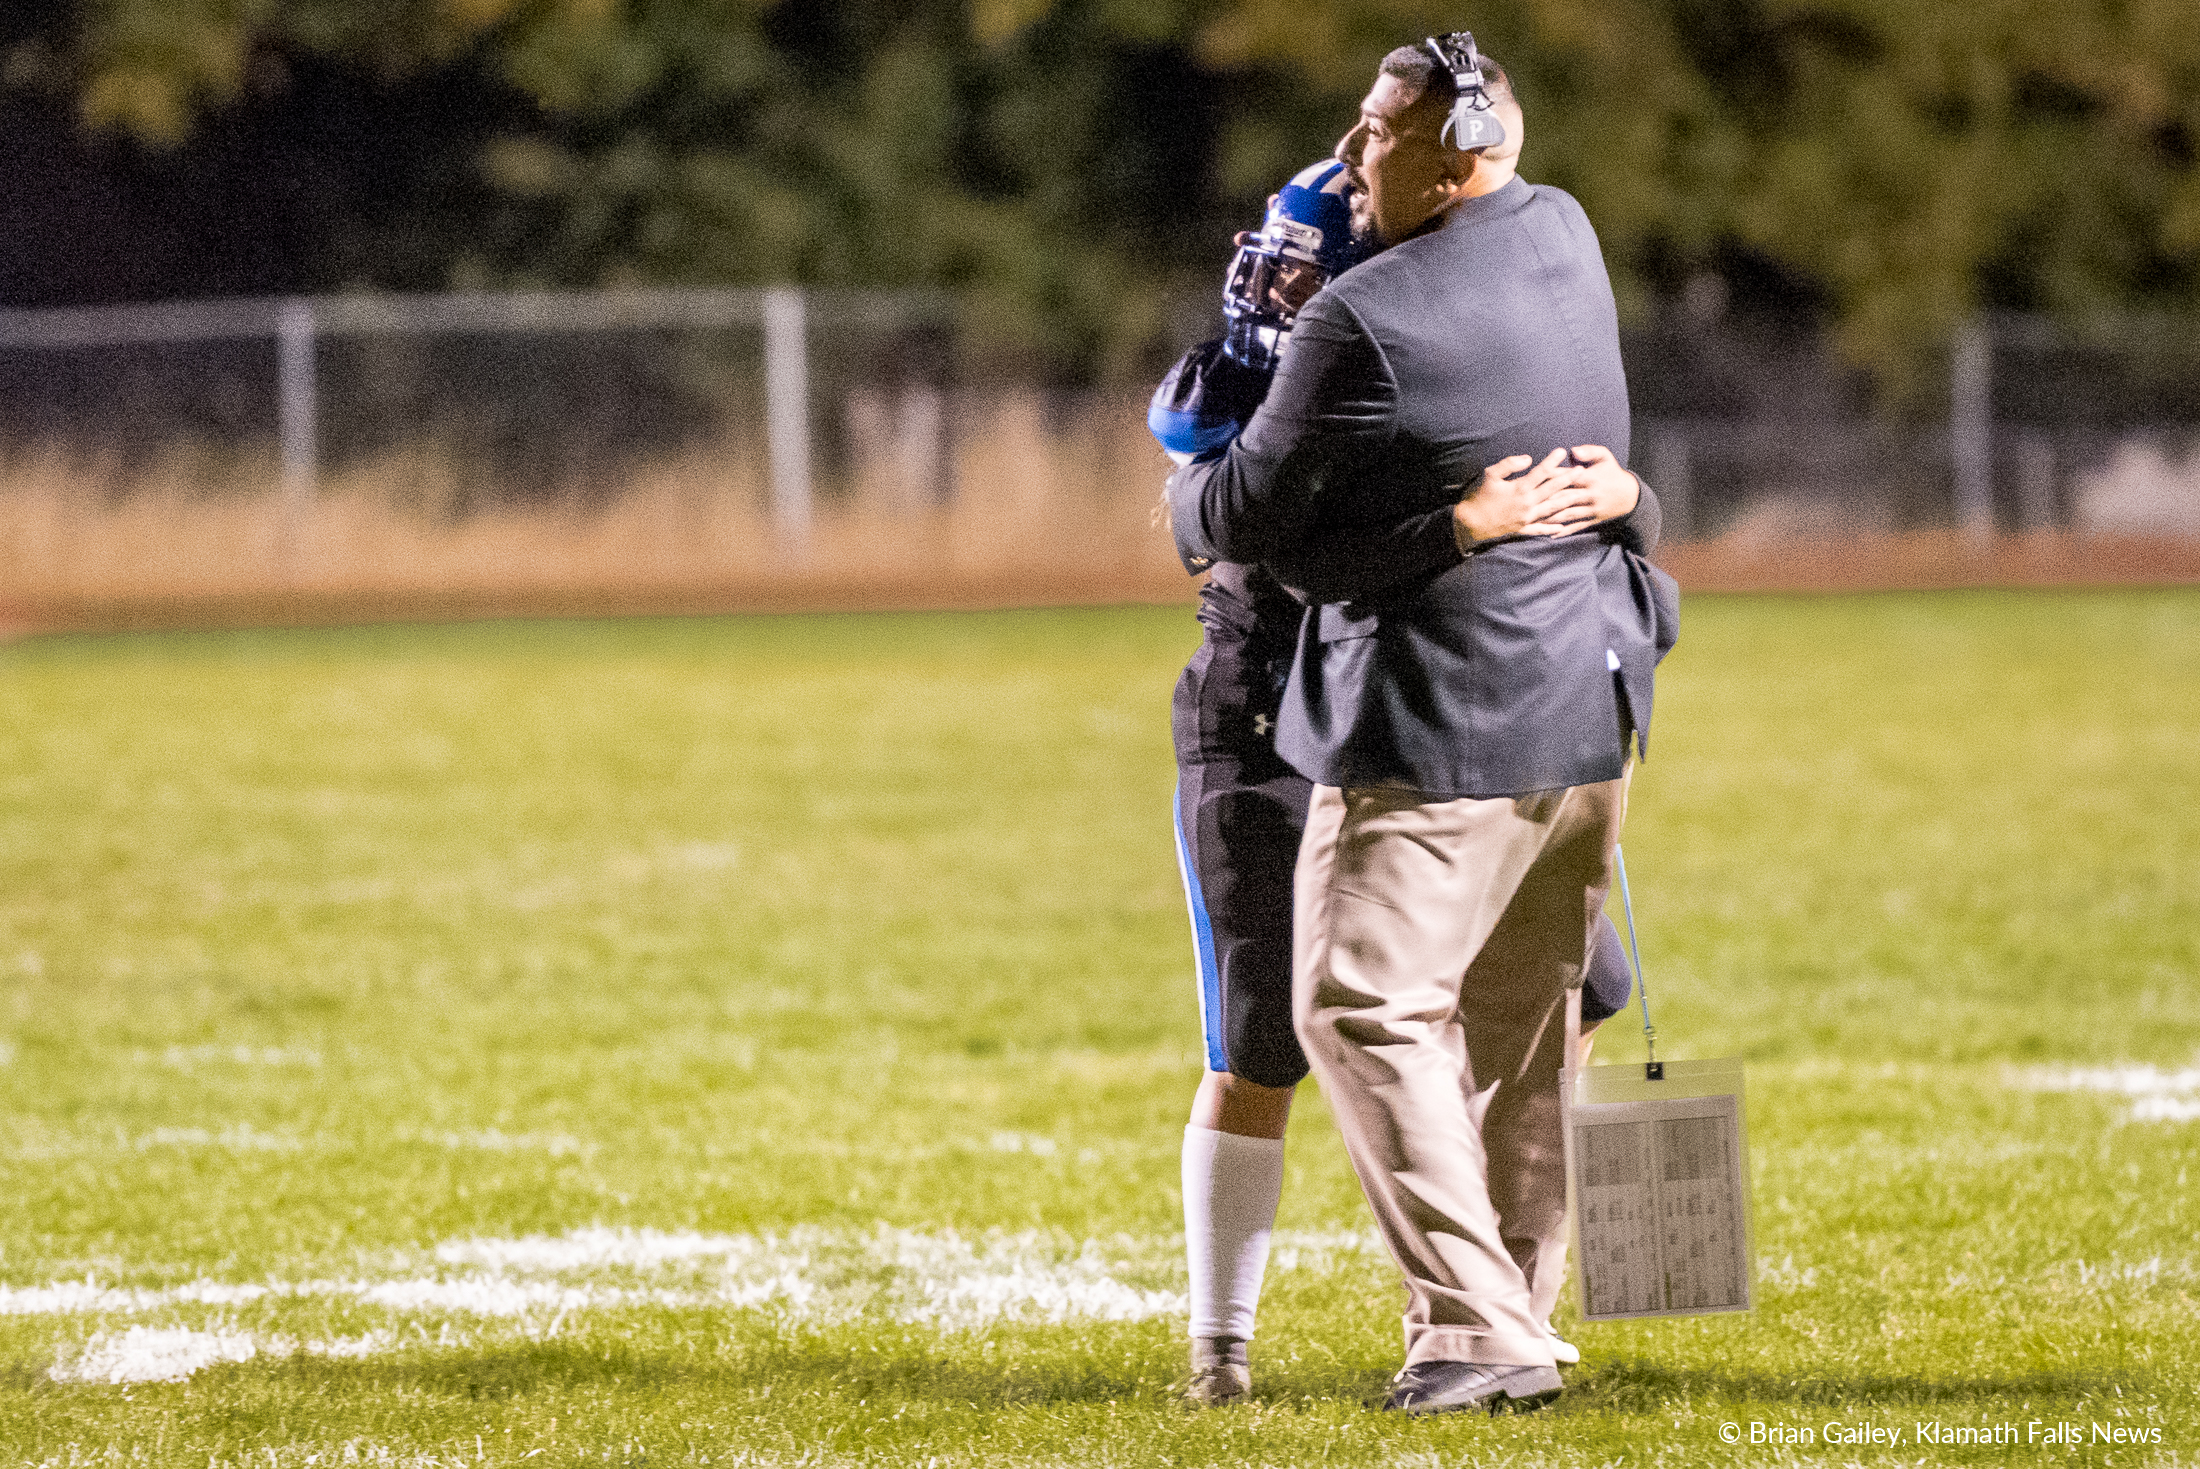 Maddy Lease celebrates with her Father and Head Coach Vic Lease after scoring her first PAT point as the new varsity kicker. ( Brian Gaile)